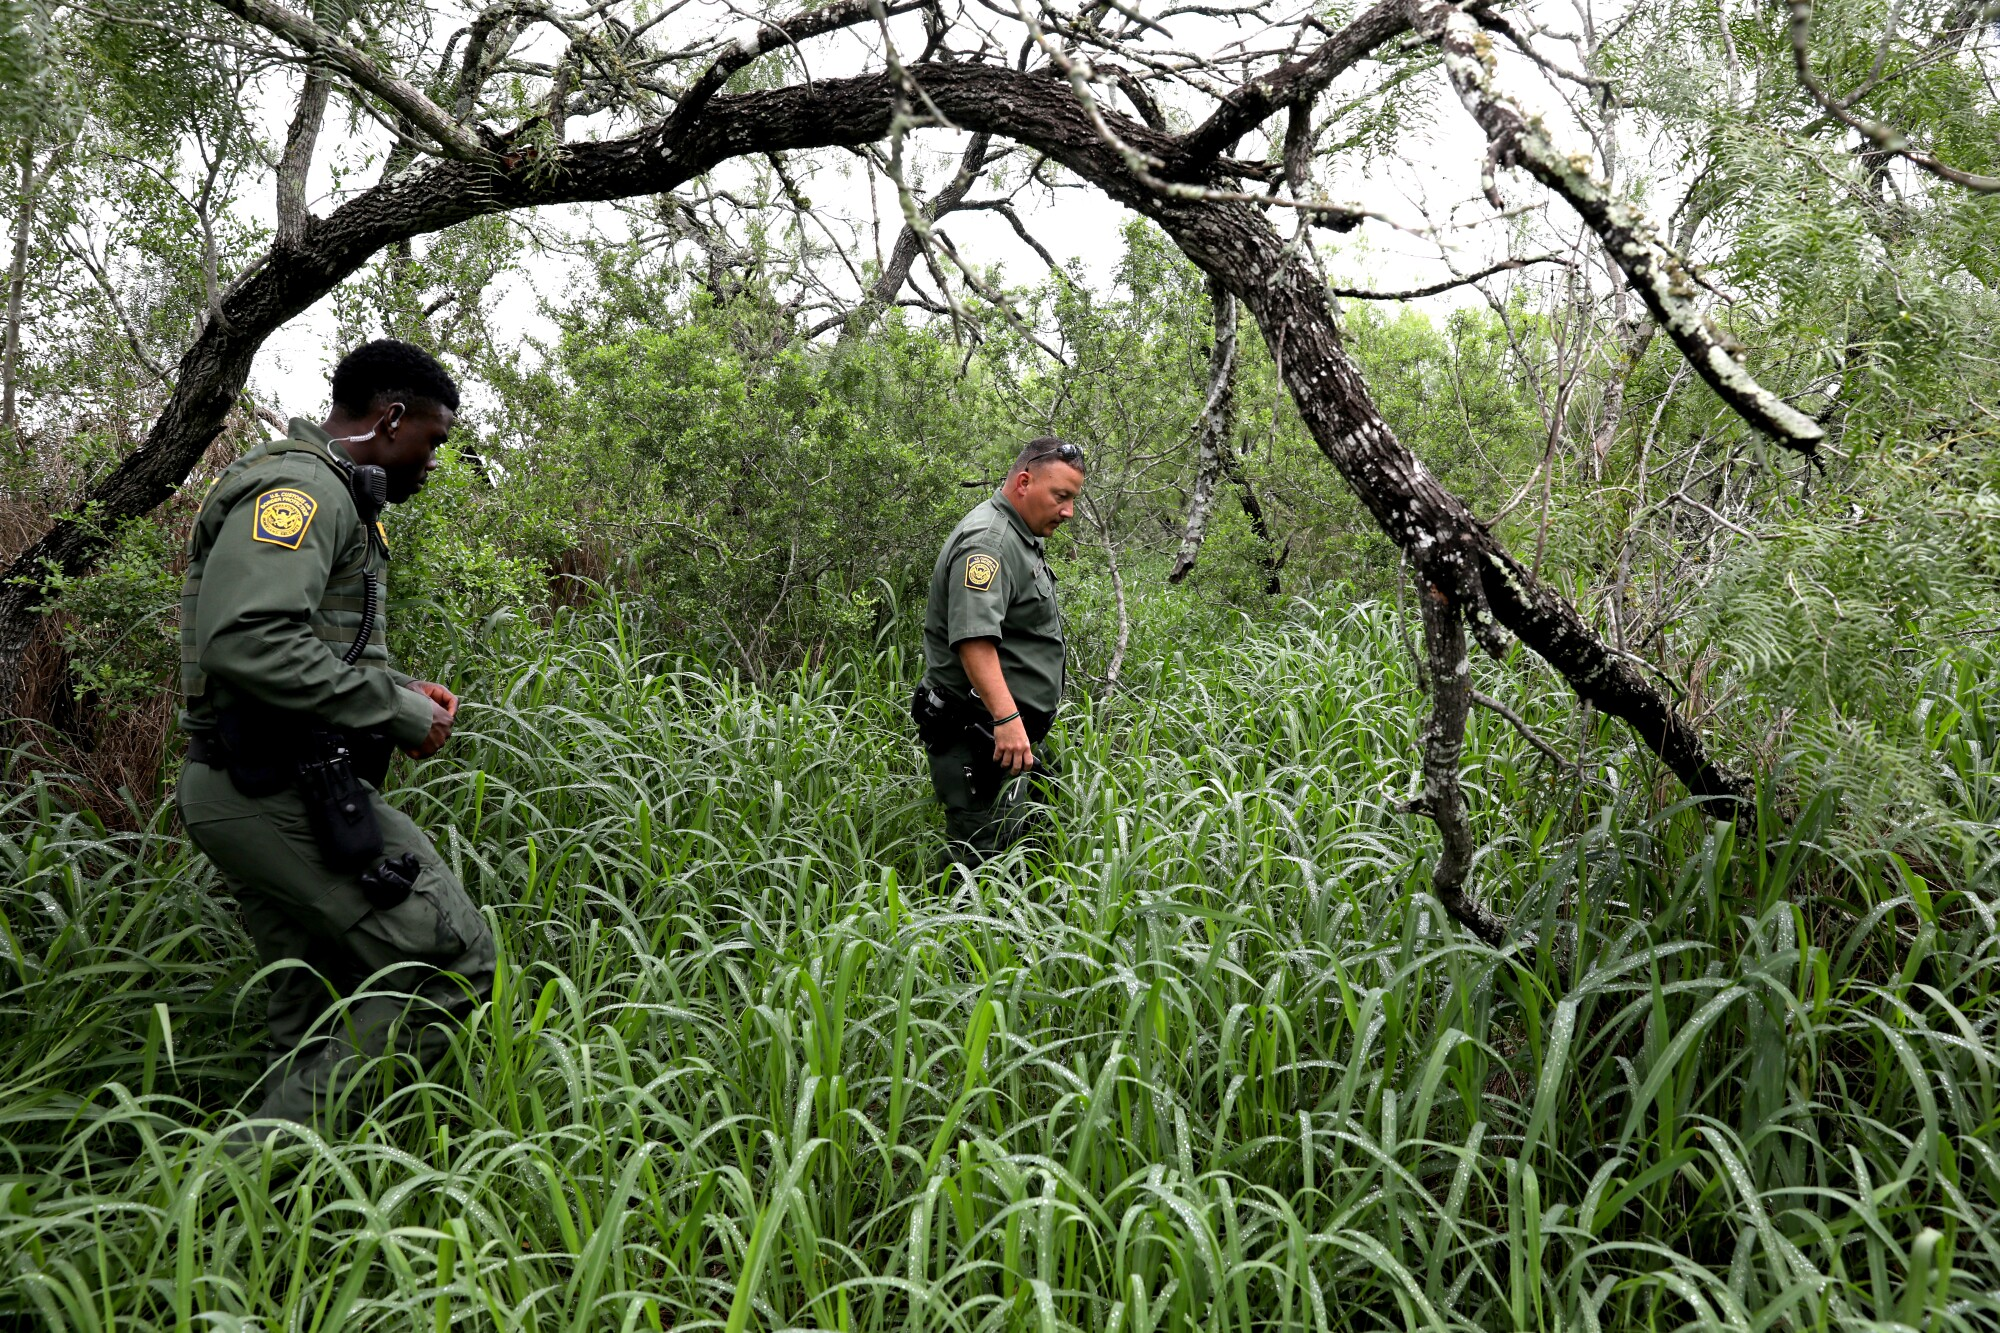 Two border agents walk in tall grass.